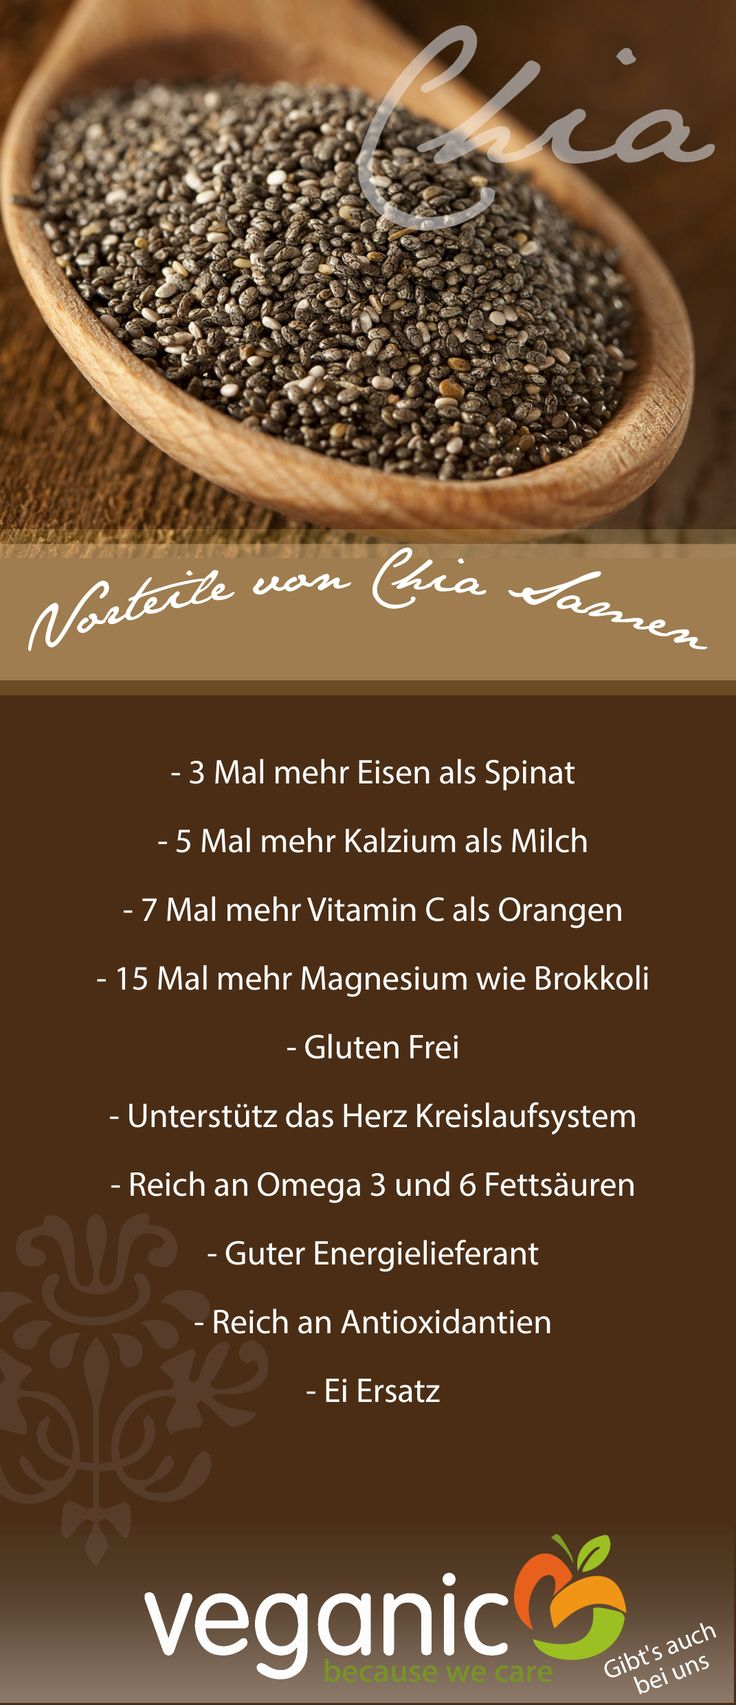 23 best images about chiasamen lecker und gesund on pinterest quiche let it be and desserts. Black Bedroom Furniture Sets. Home Design Ideas